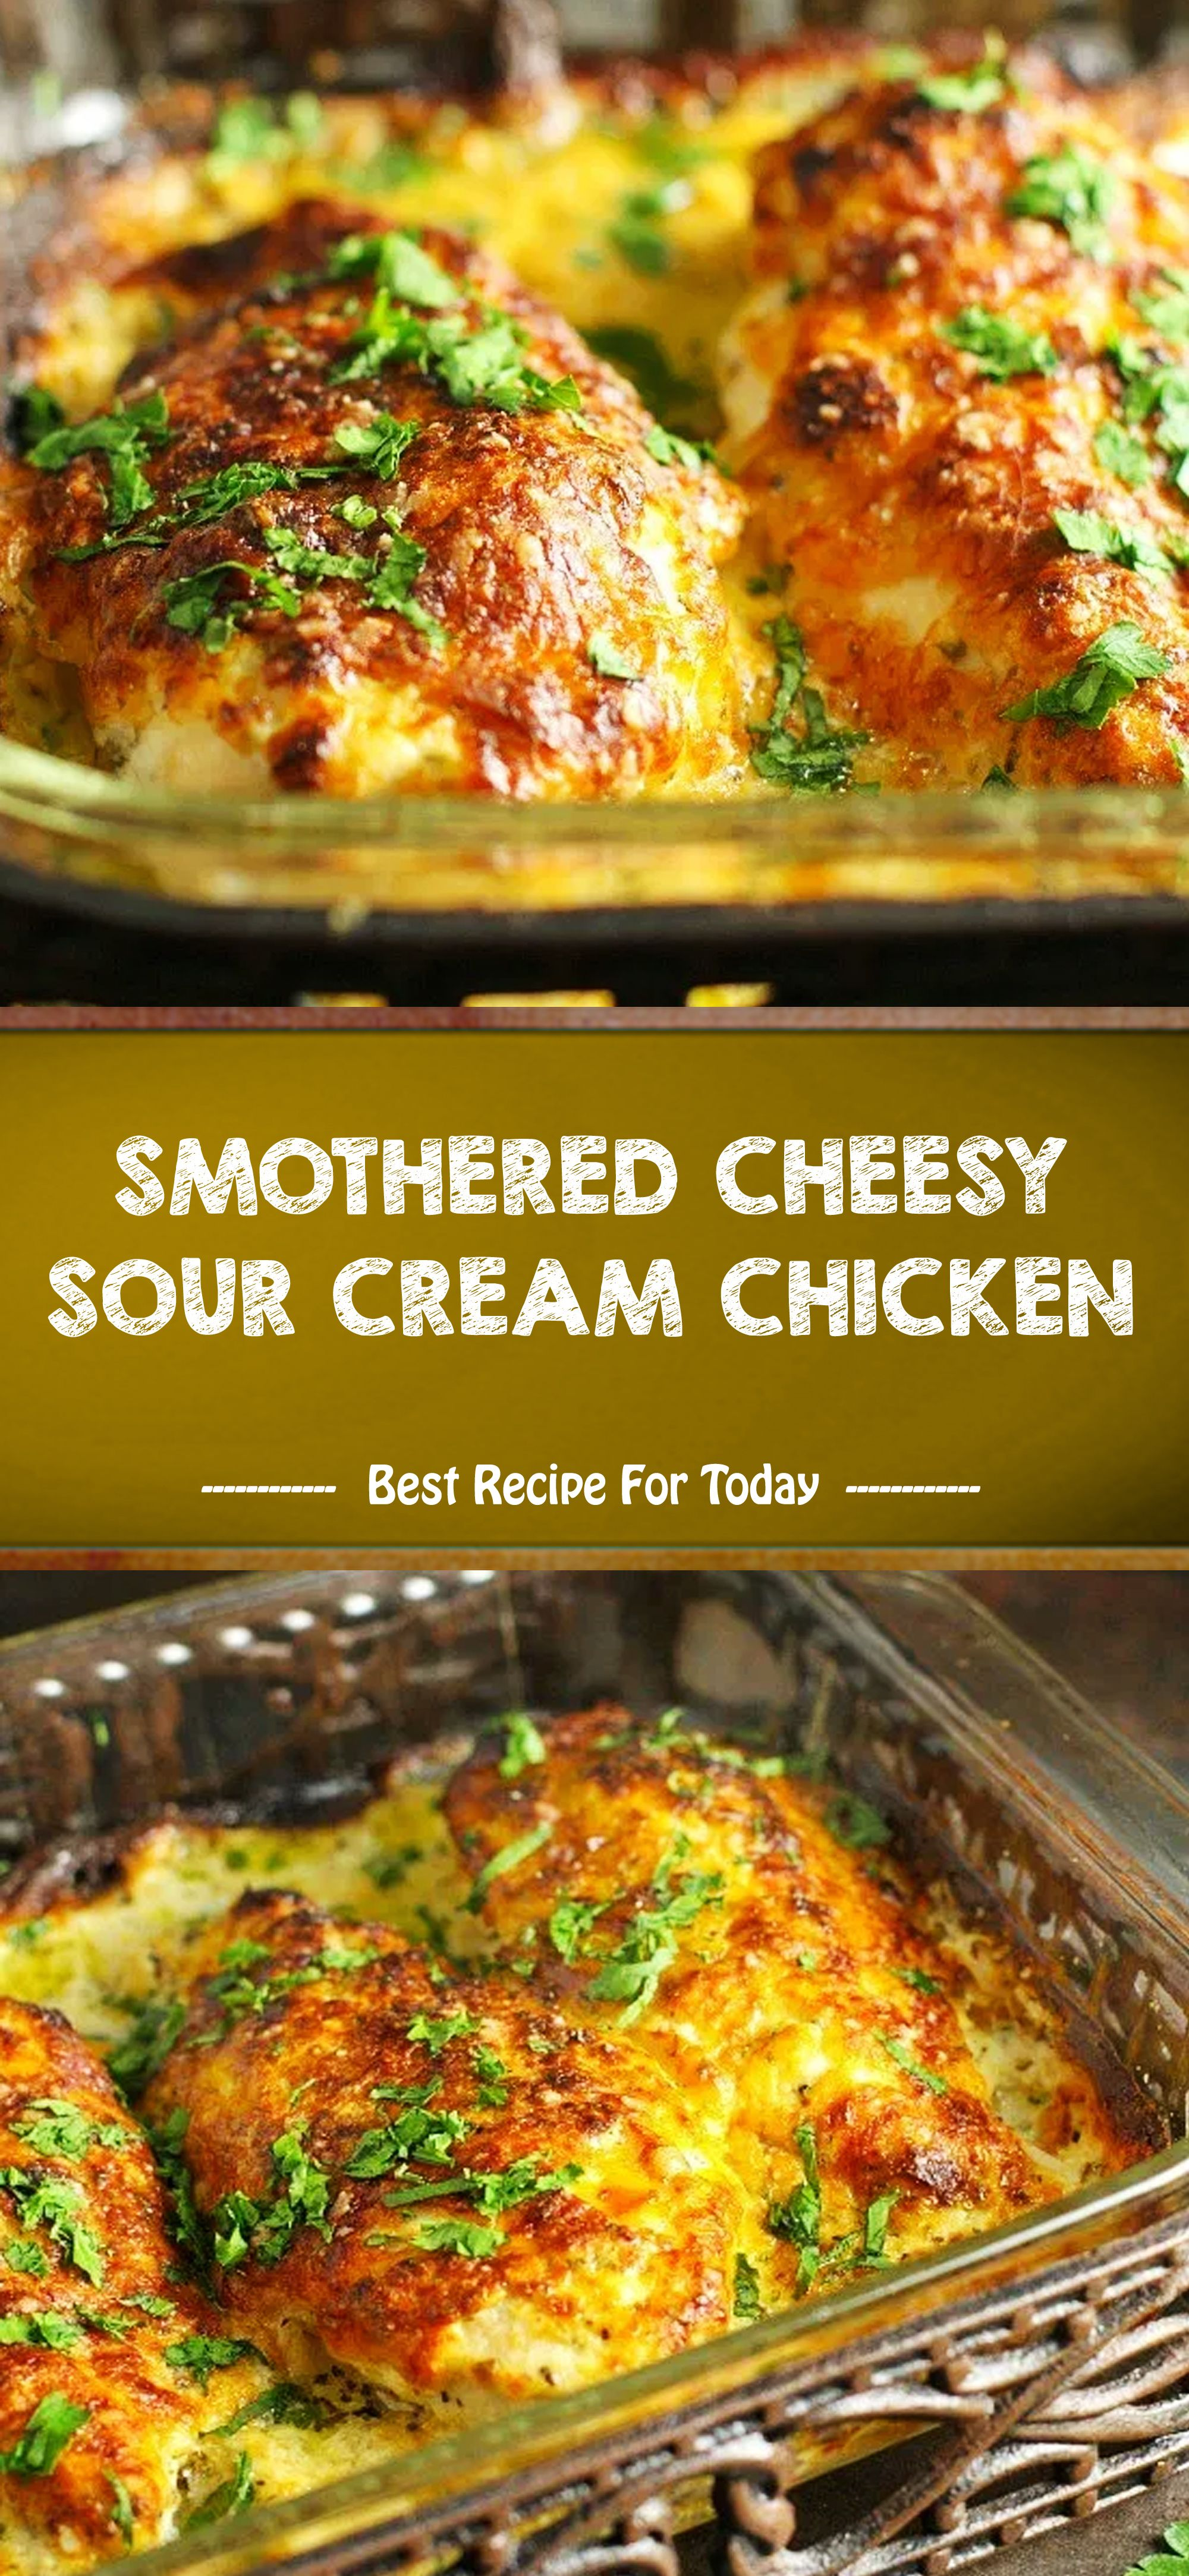 Smothered Cheesy Sour Cream Chicken In 2020 Sour Cream Chicken Easy Chicken Recipes Best Chicken Recipes